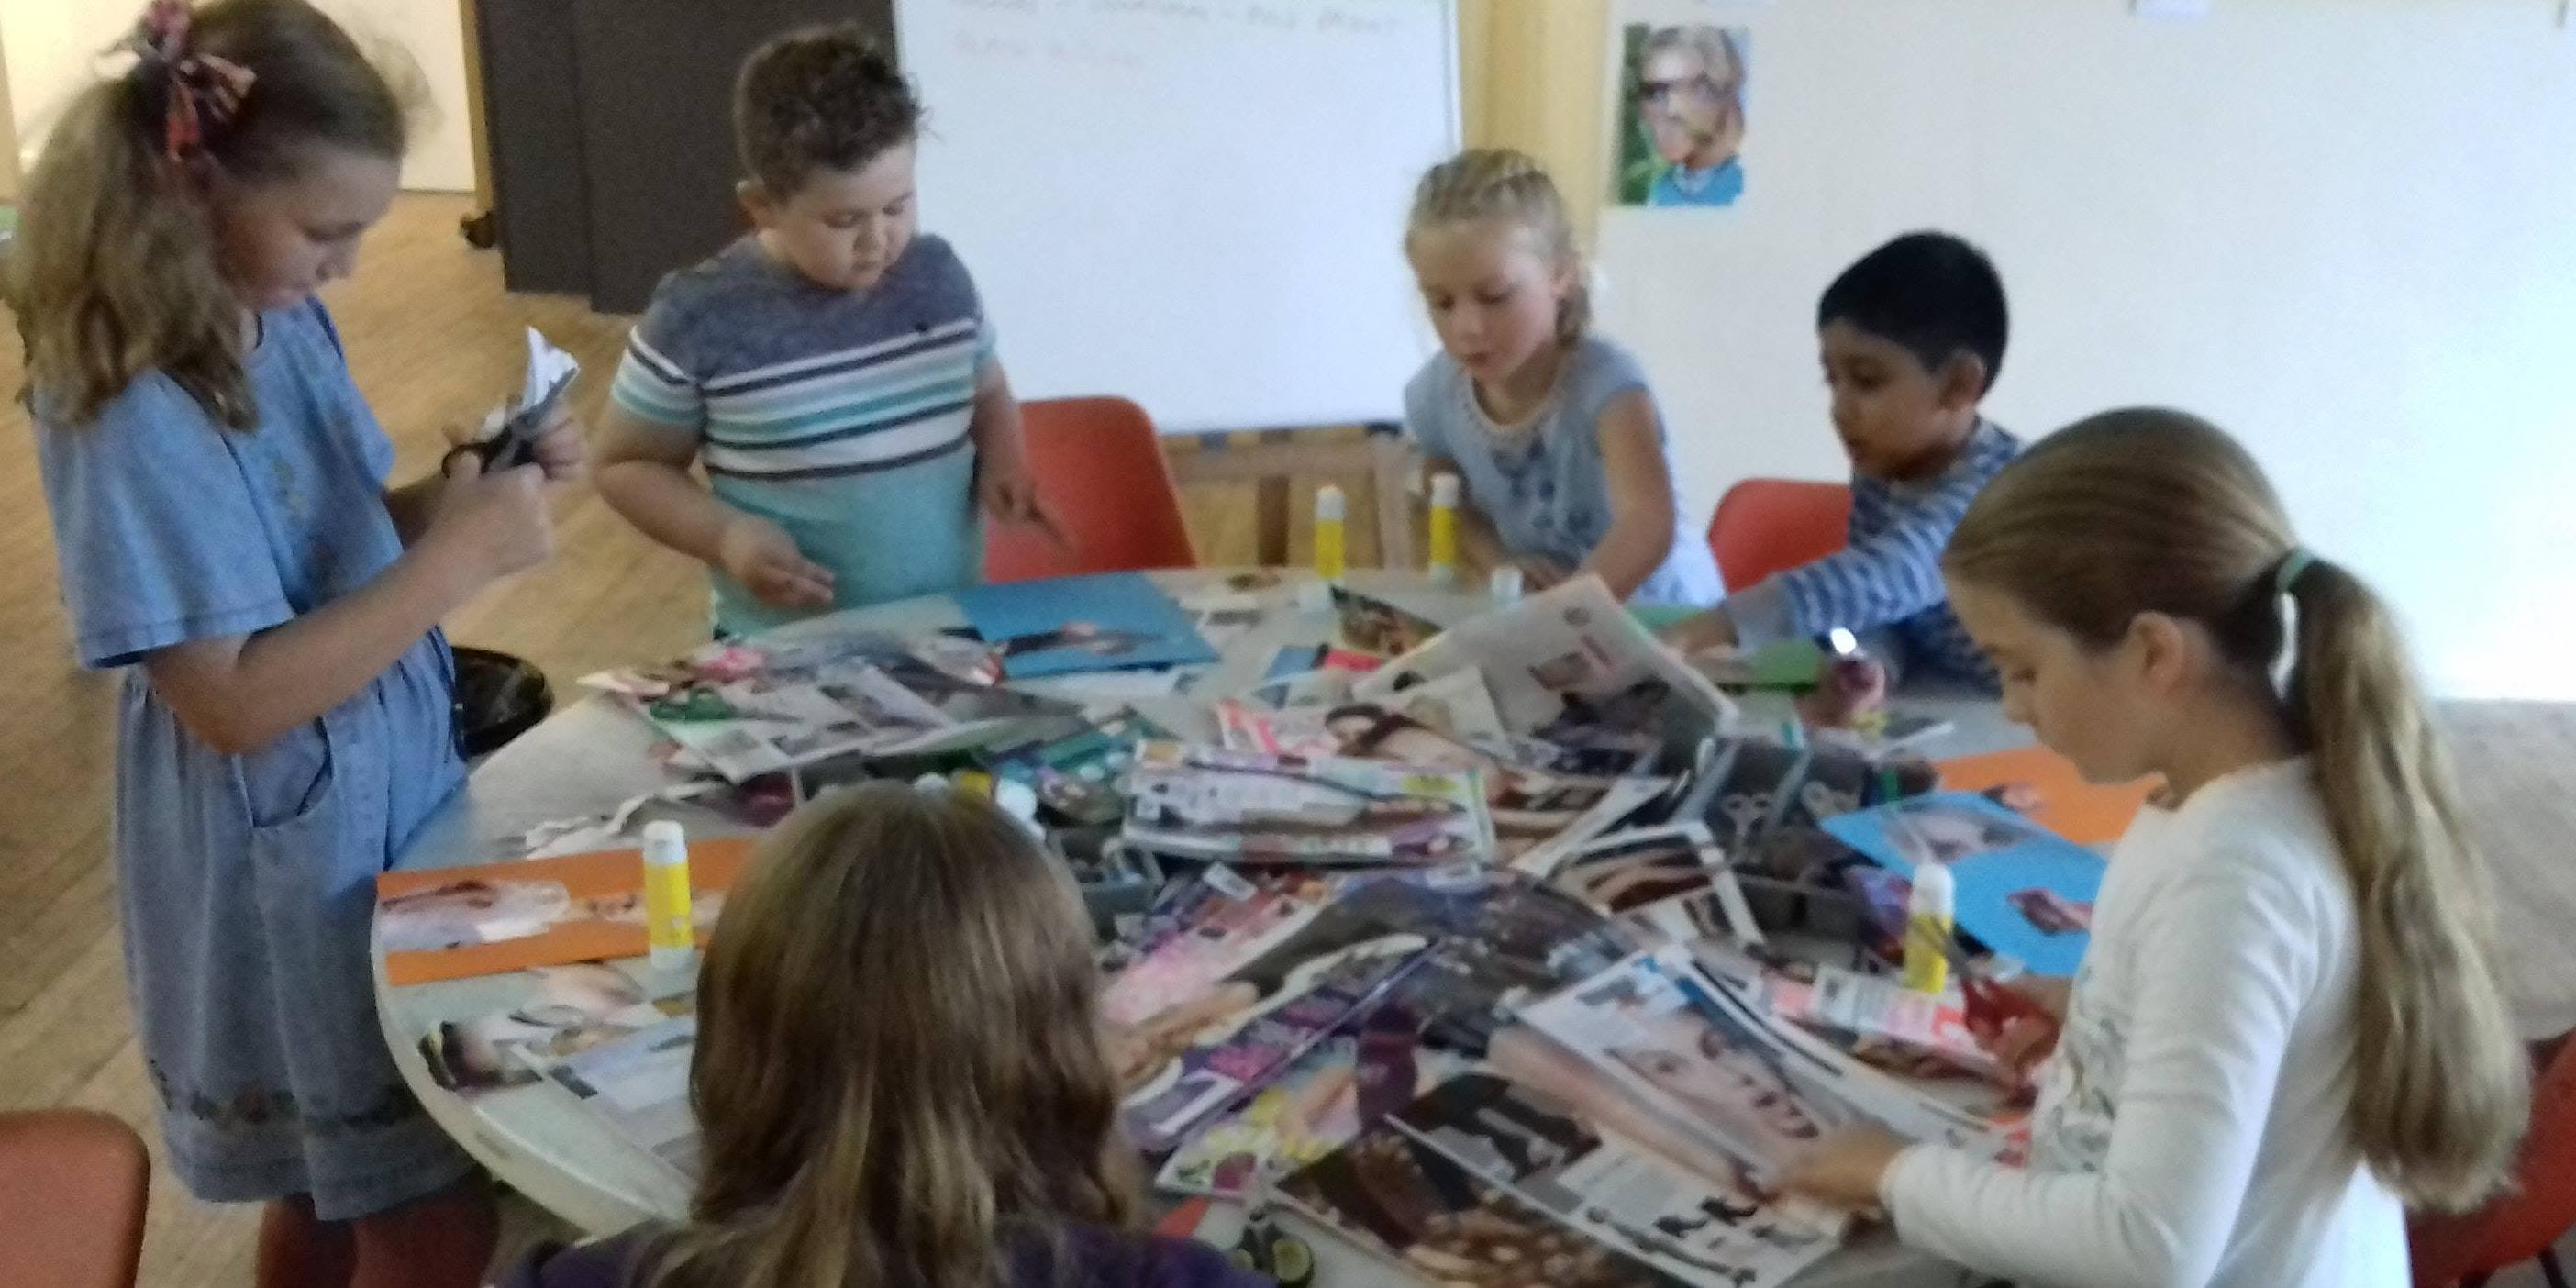 photo of children at Saturday Arts Club in Mirfield